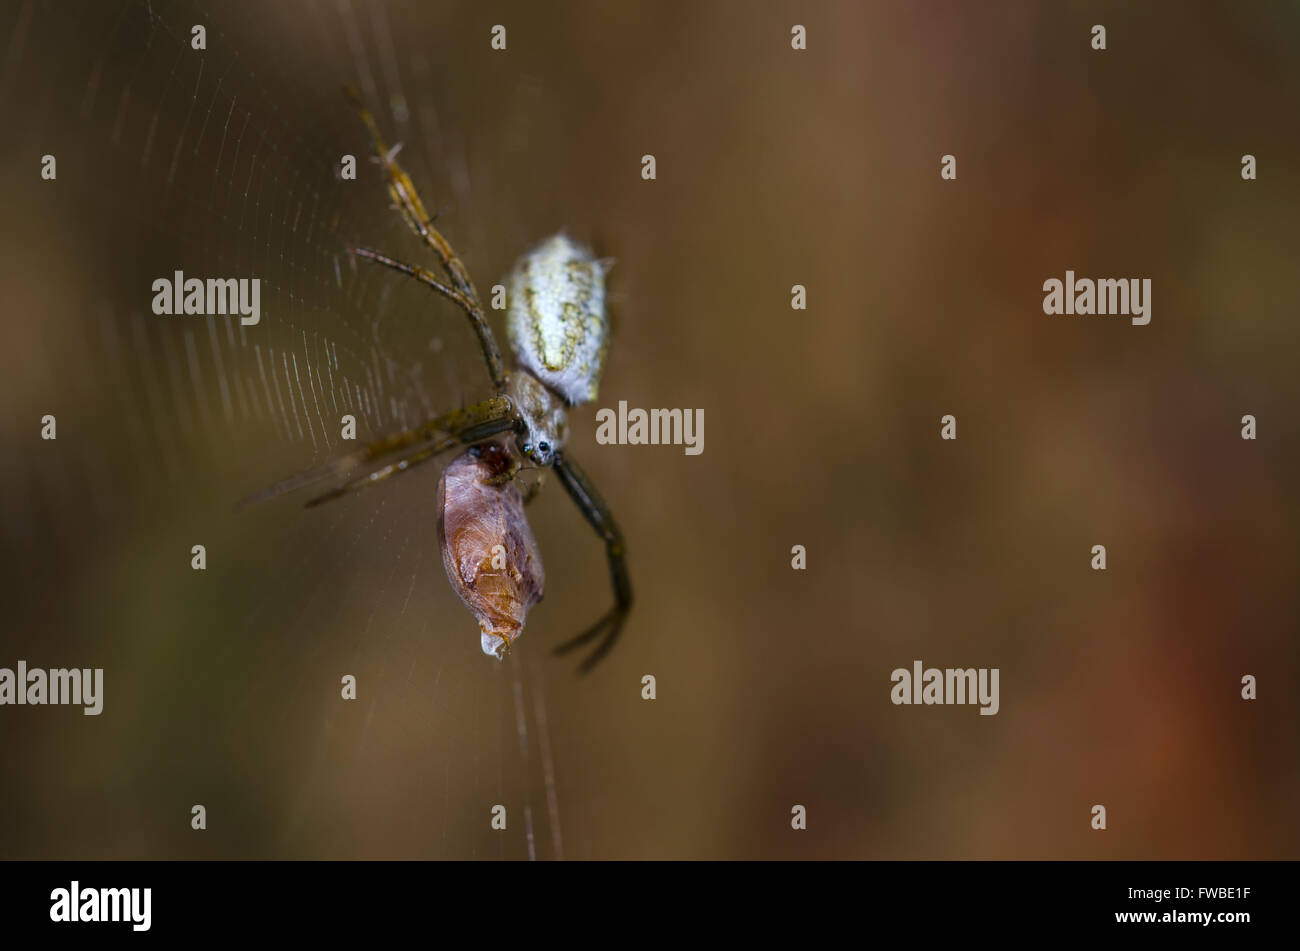 Spider and its victim - Stock Image